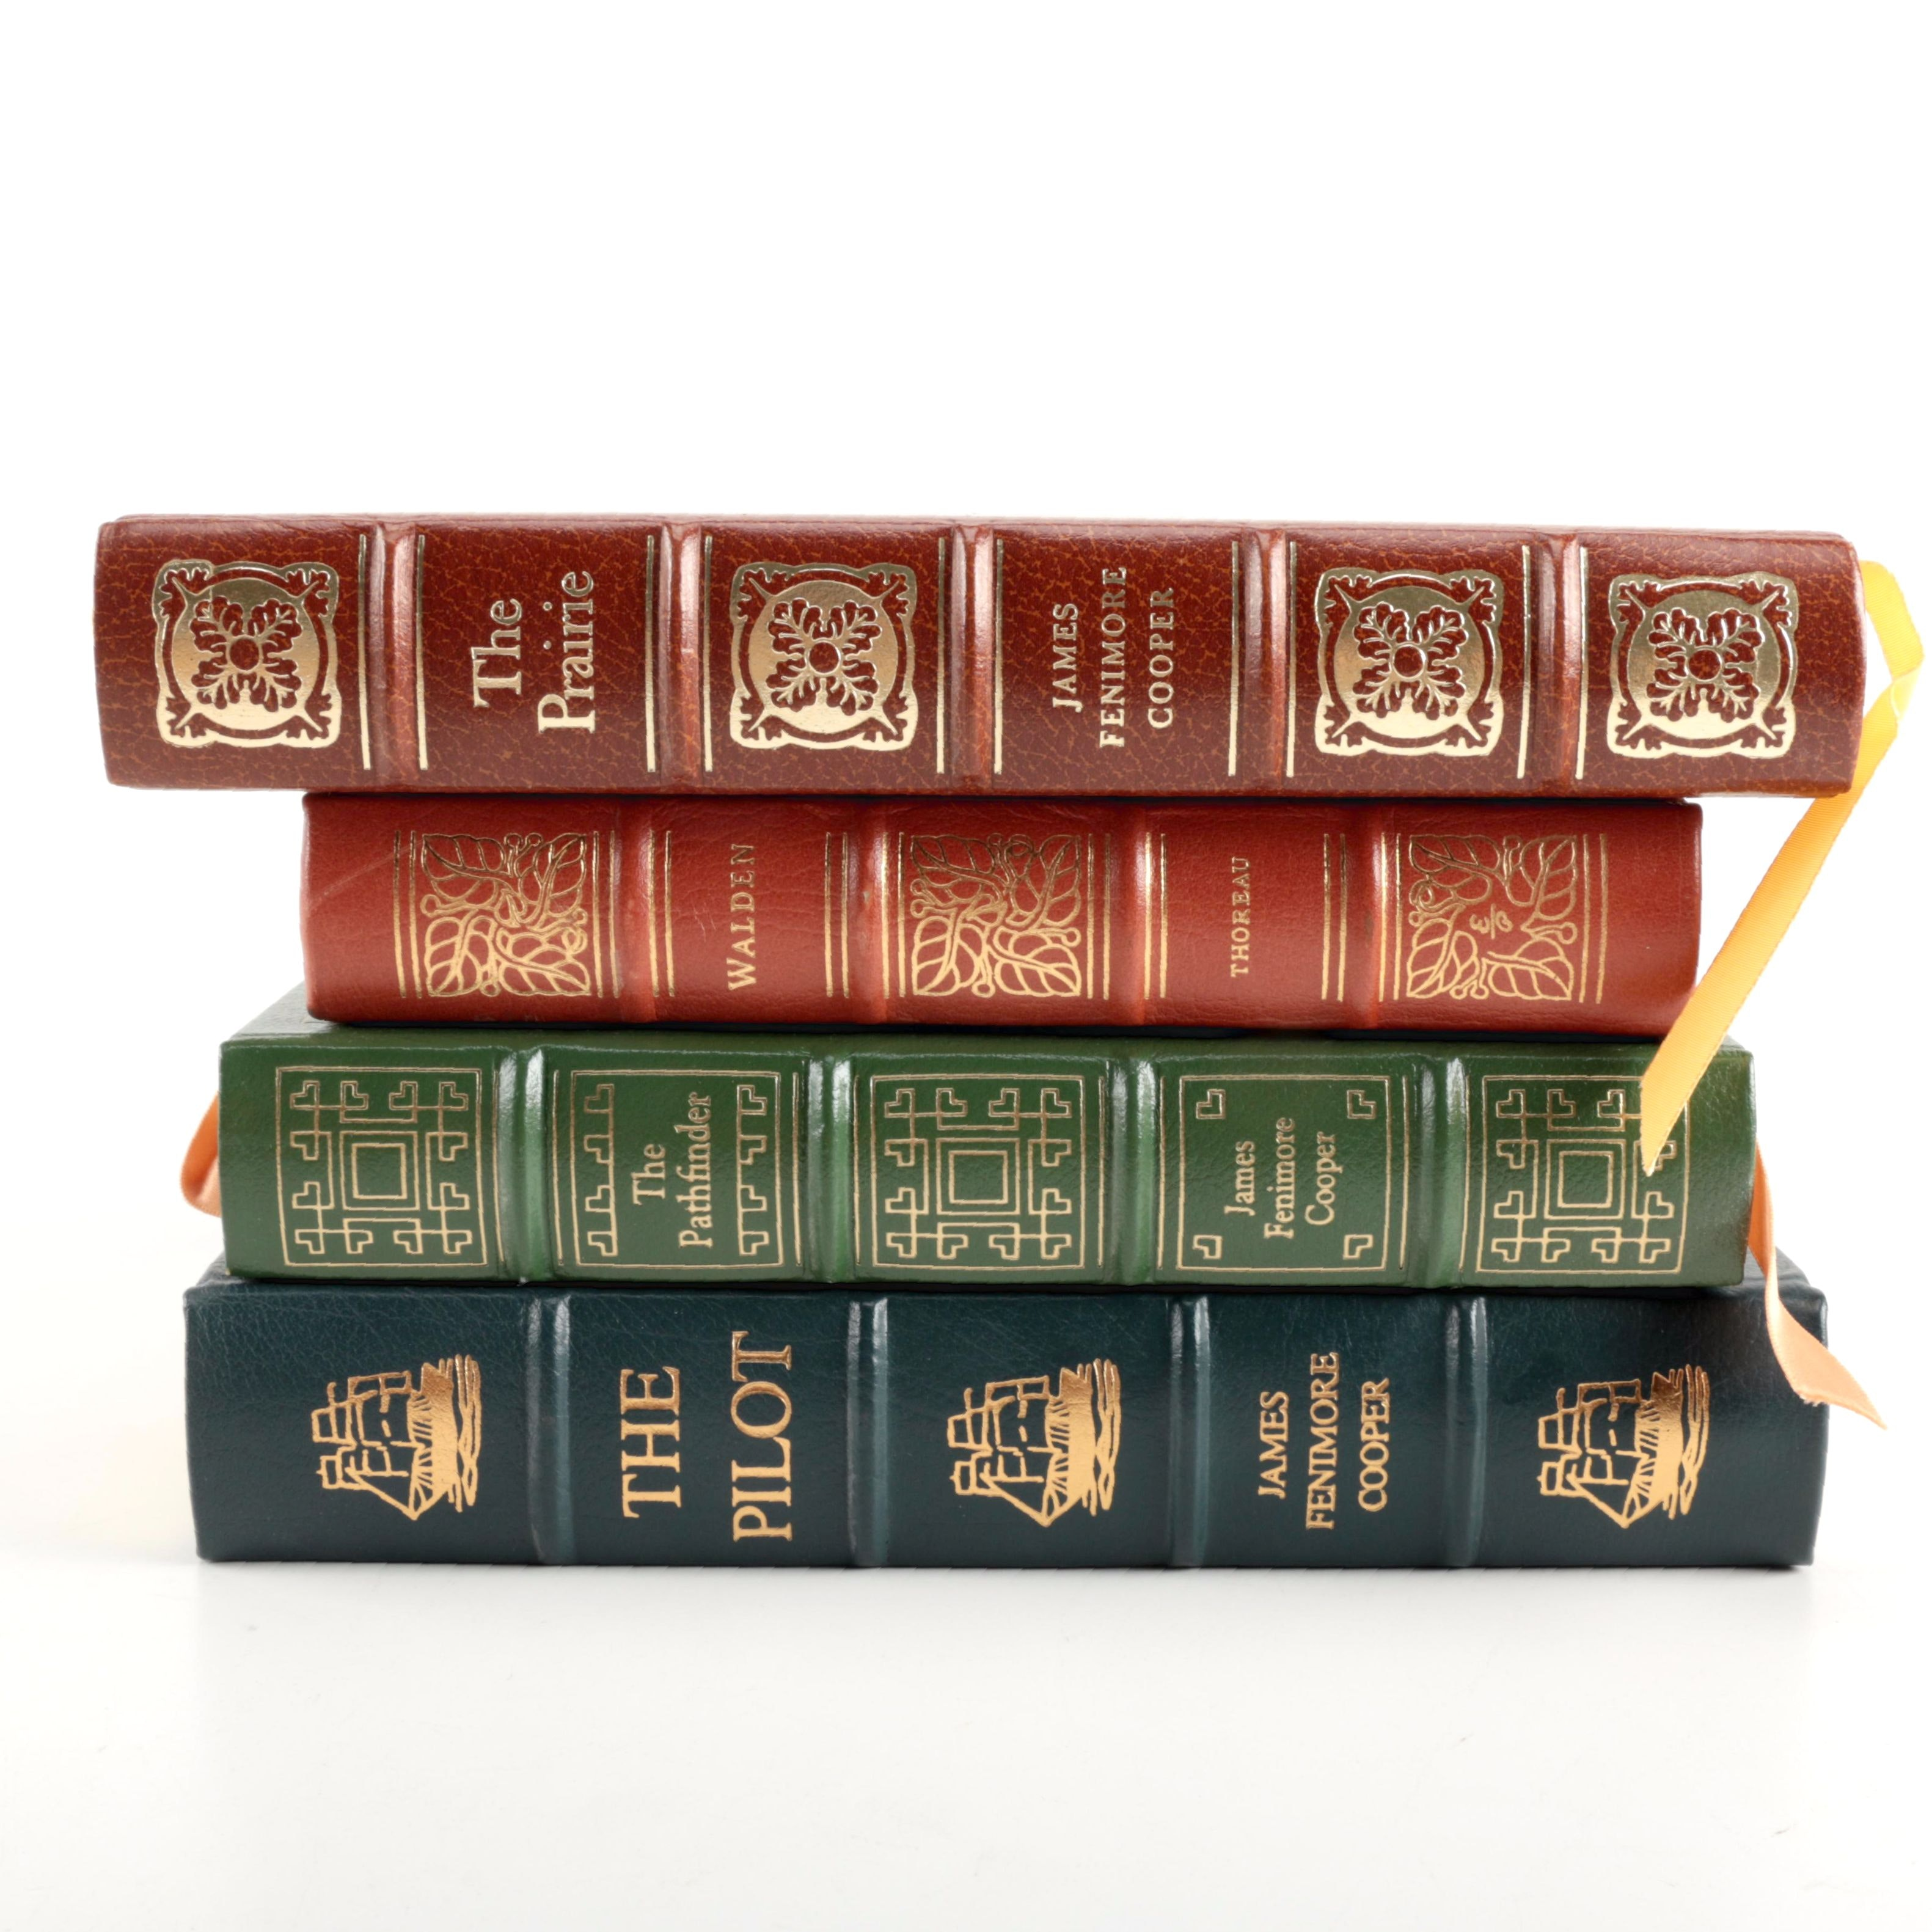 Easton Press Leather Bound Books Featuring James Fenimore Cooper